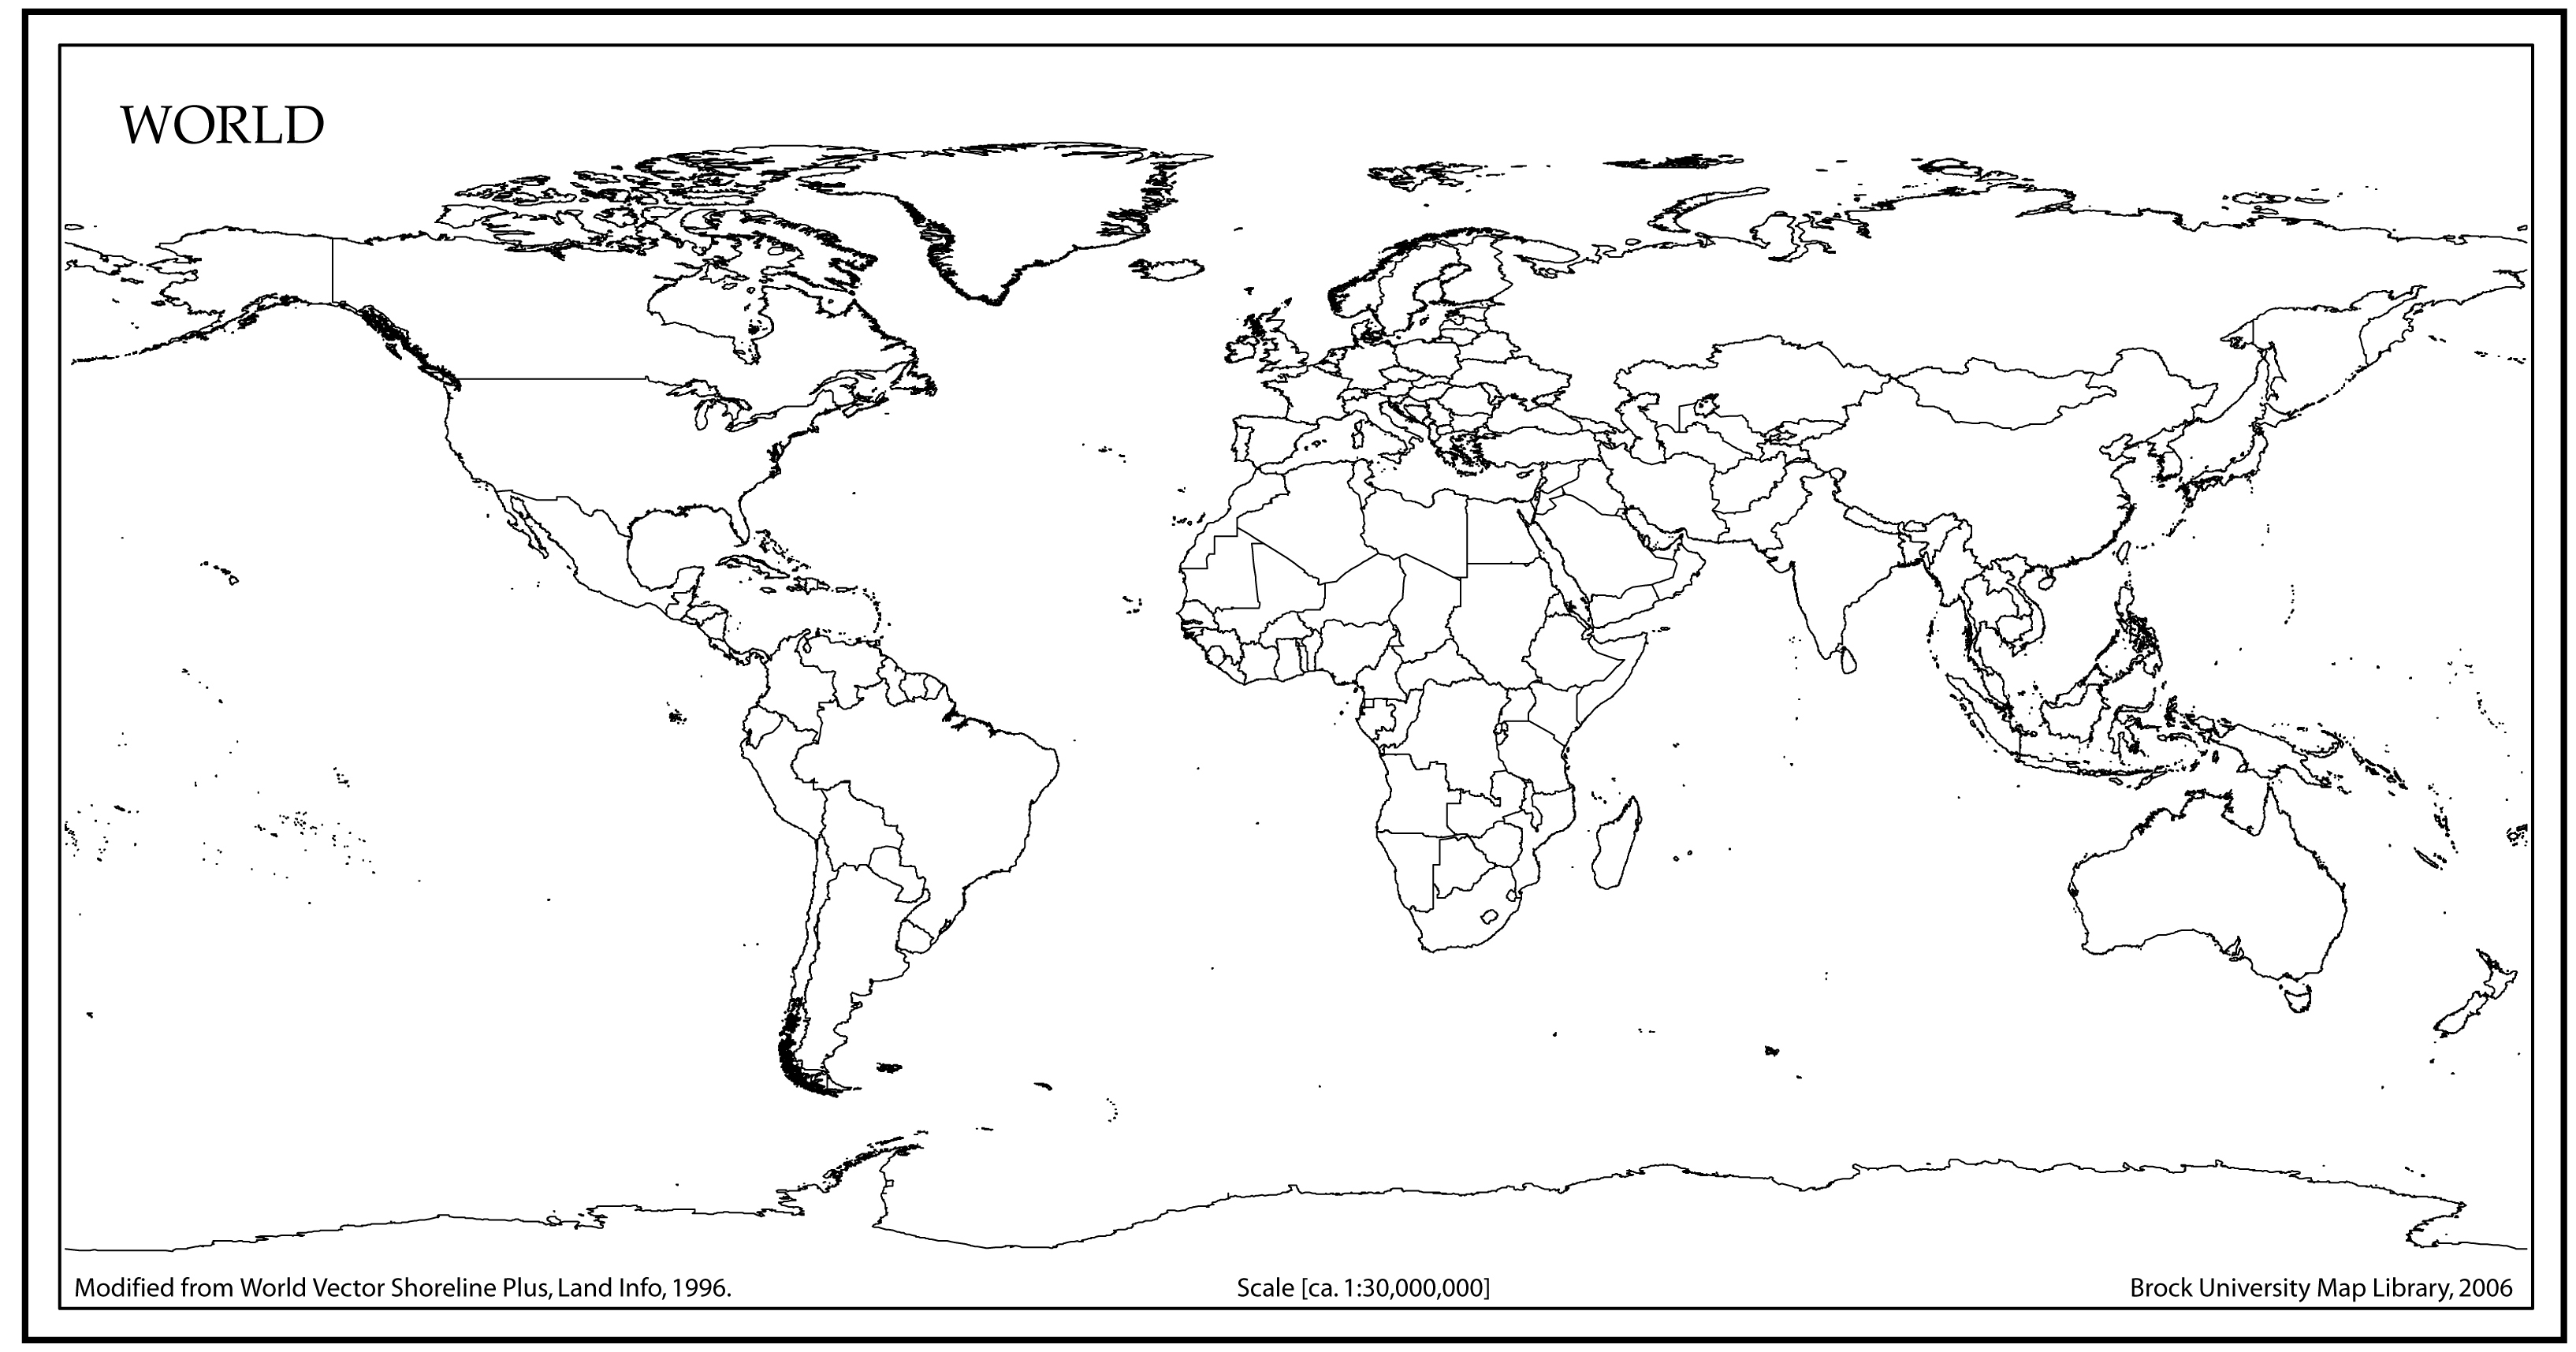 World Map Outline with Countries